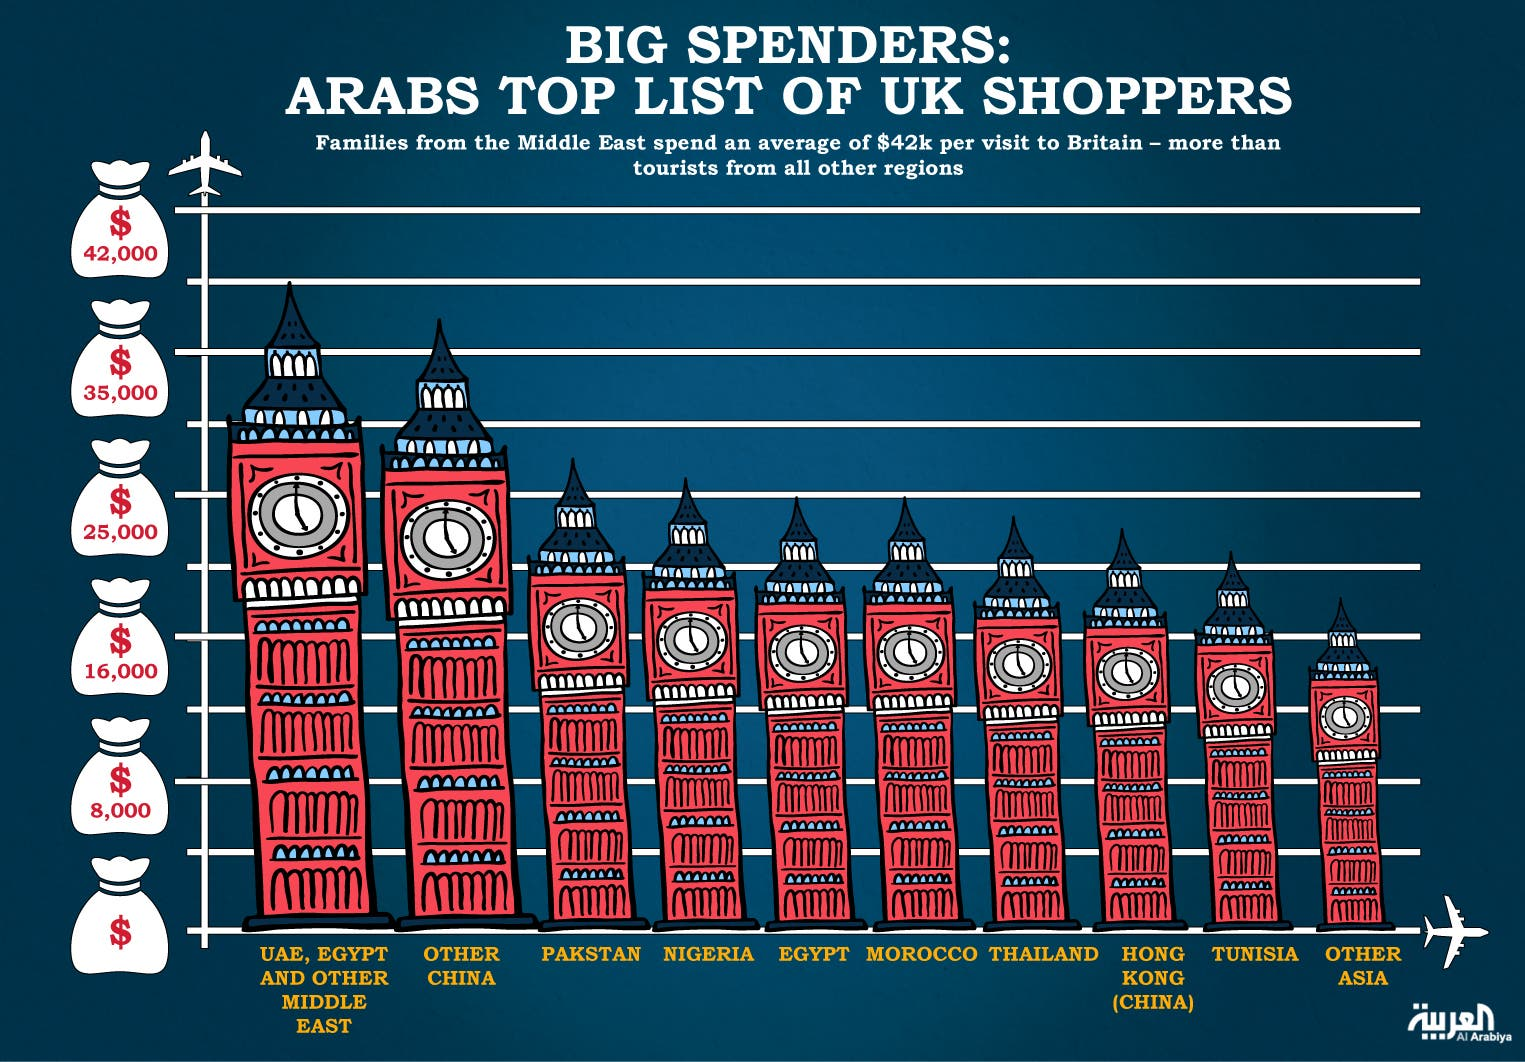 Infographic: Big spenders: Arabs top list of UK shoppers